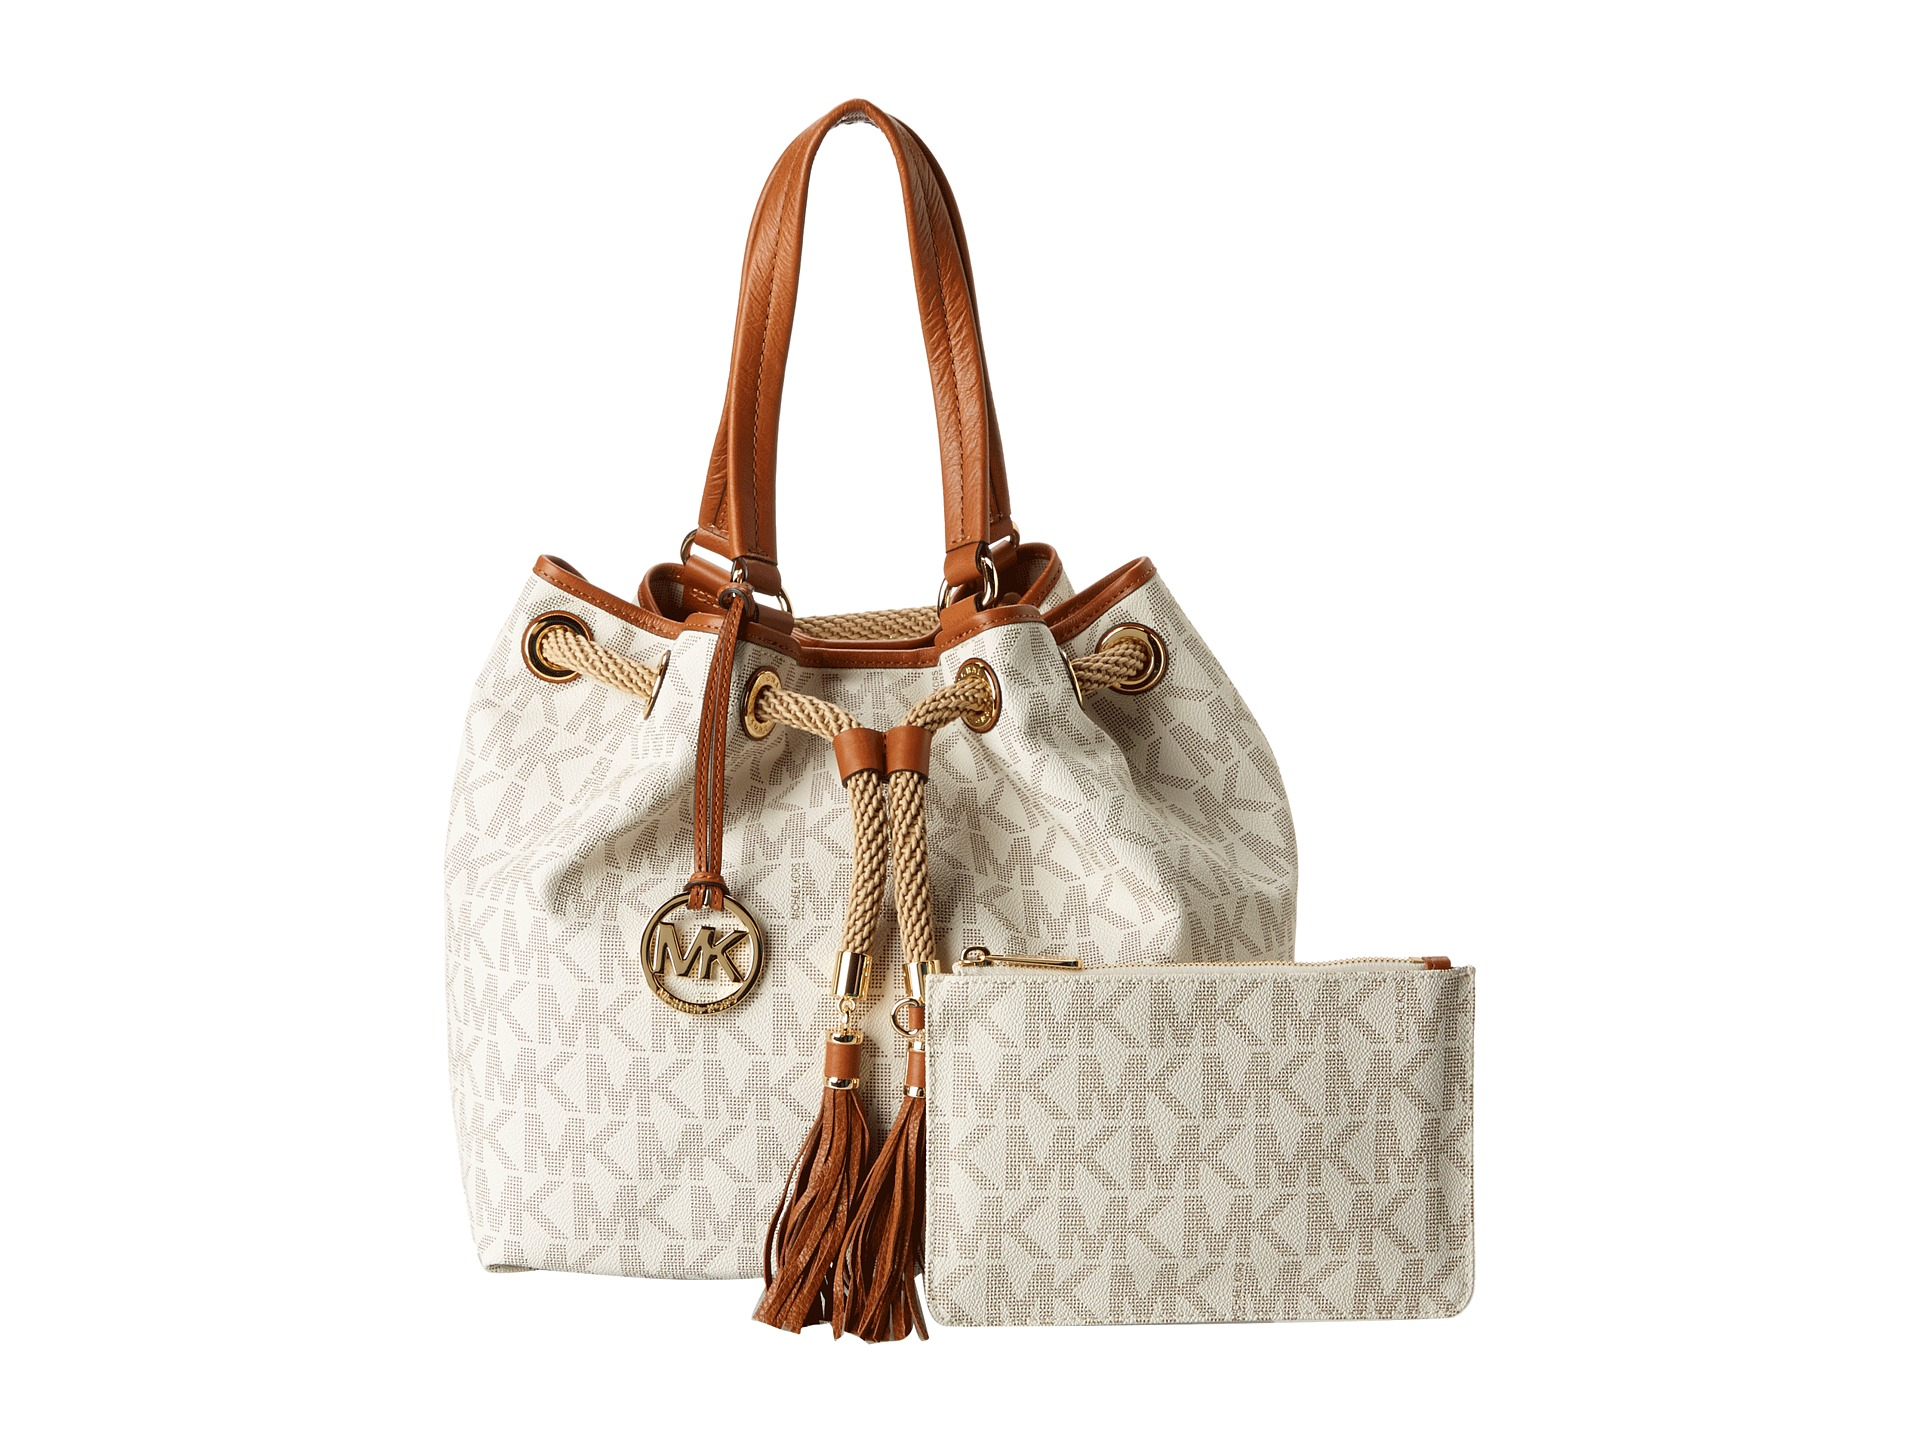 0c94387a158ee4 Gallery. Previously sold at: Zappos · Women's Michael Kors Marina